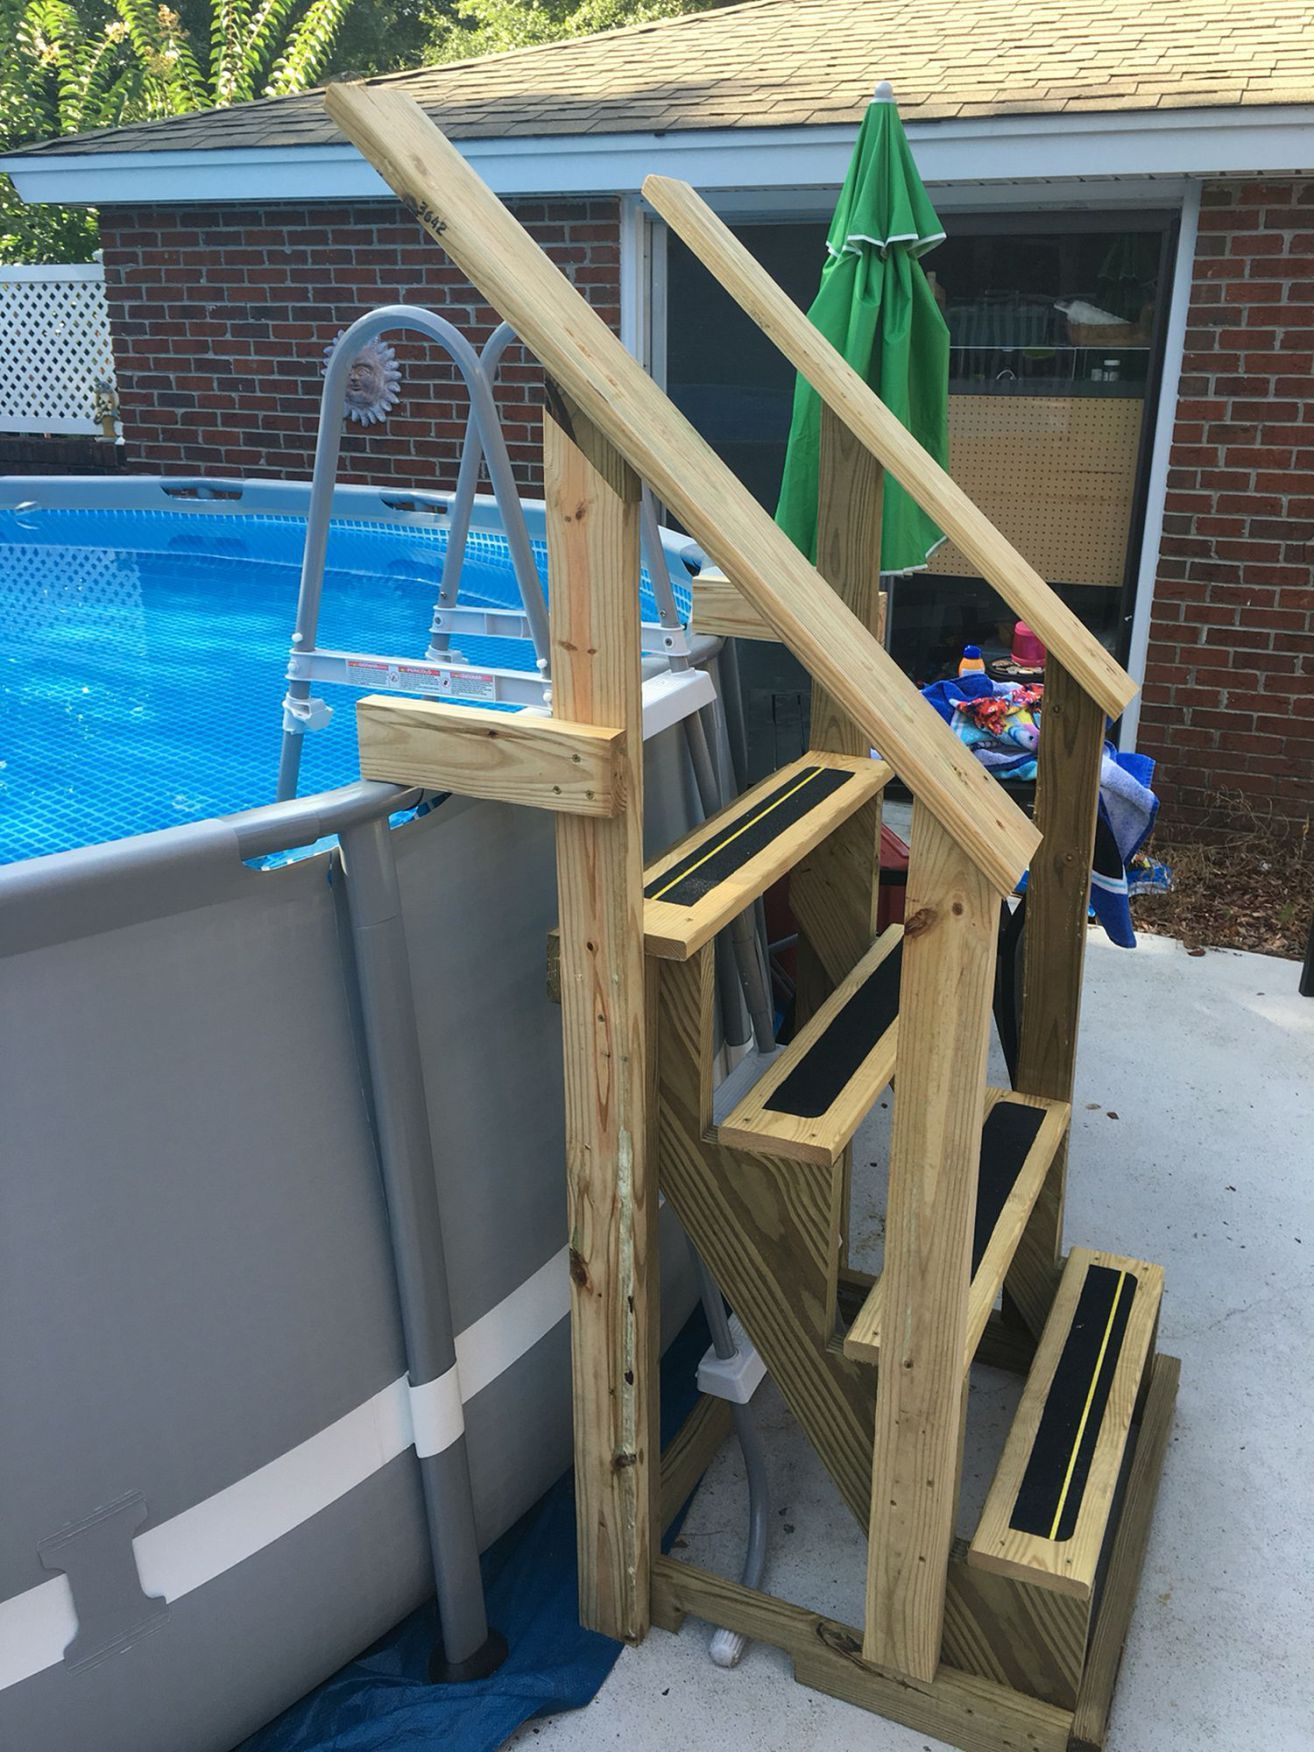 Top 58 diy above ground pool ideas on a budget above - Above ground pool ideas on a budget ...